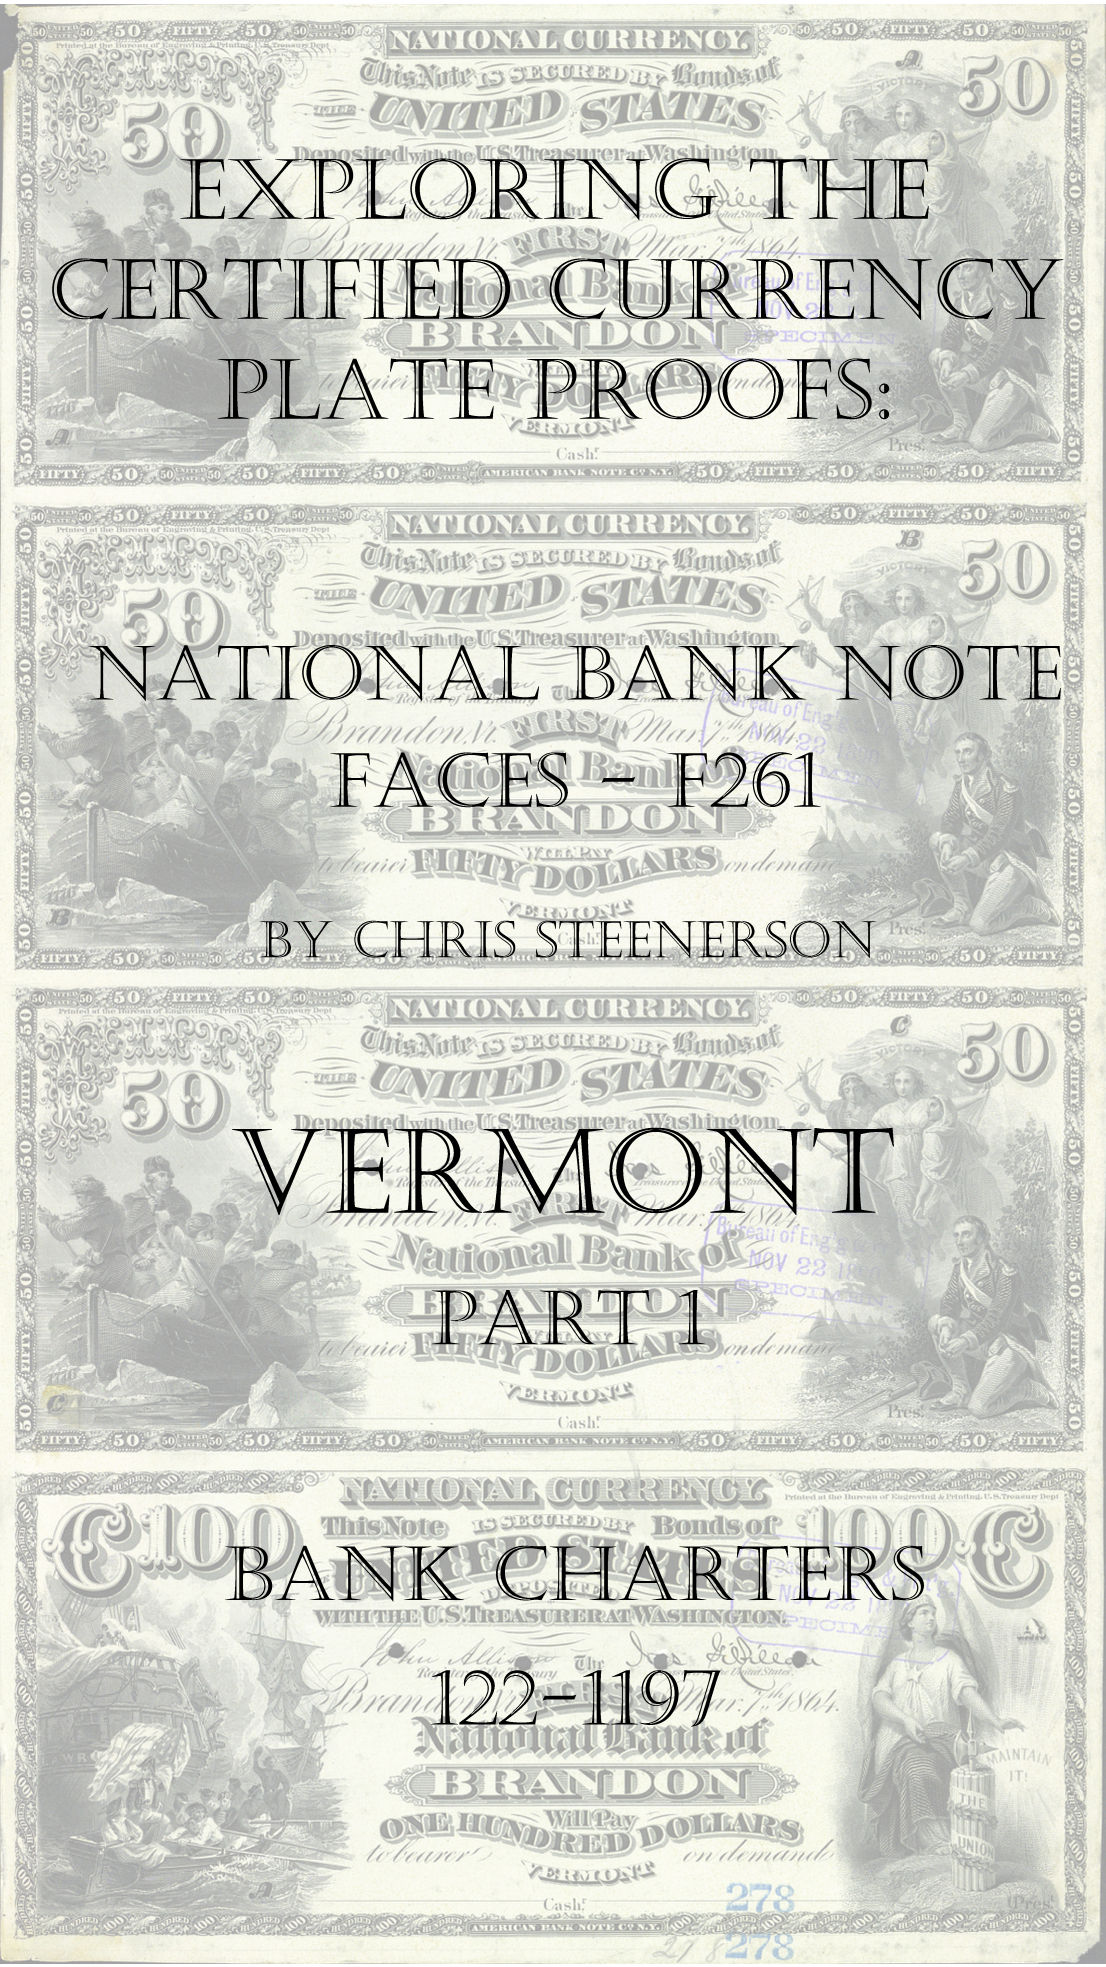 Vermont National Bank Note Currency Proofs